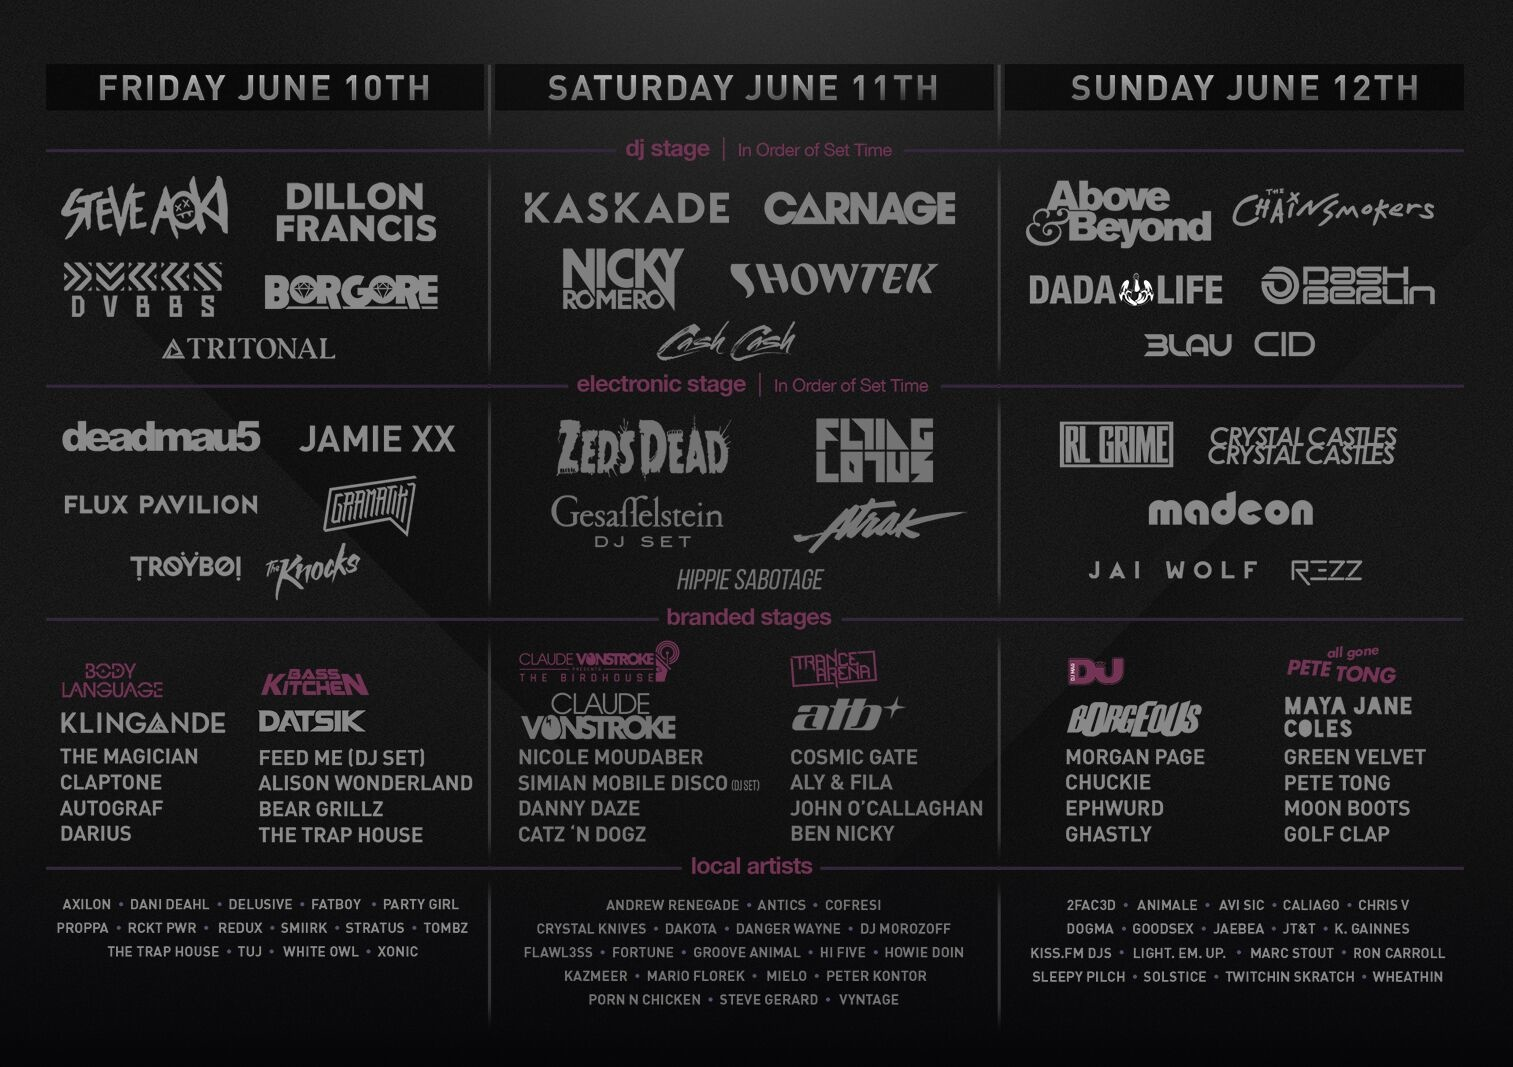 Spring Awakening Addams/Medill Park Chicago, IL Daily Lineup